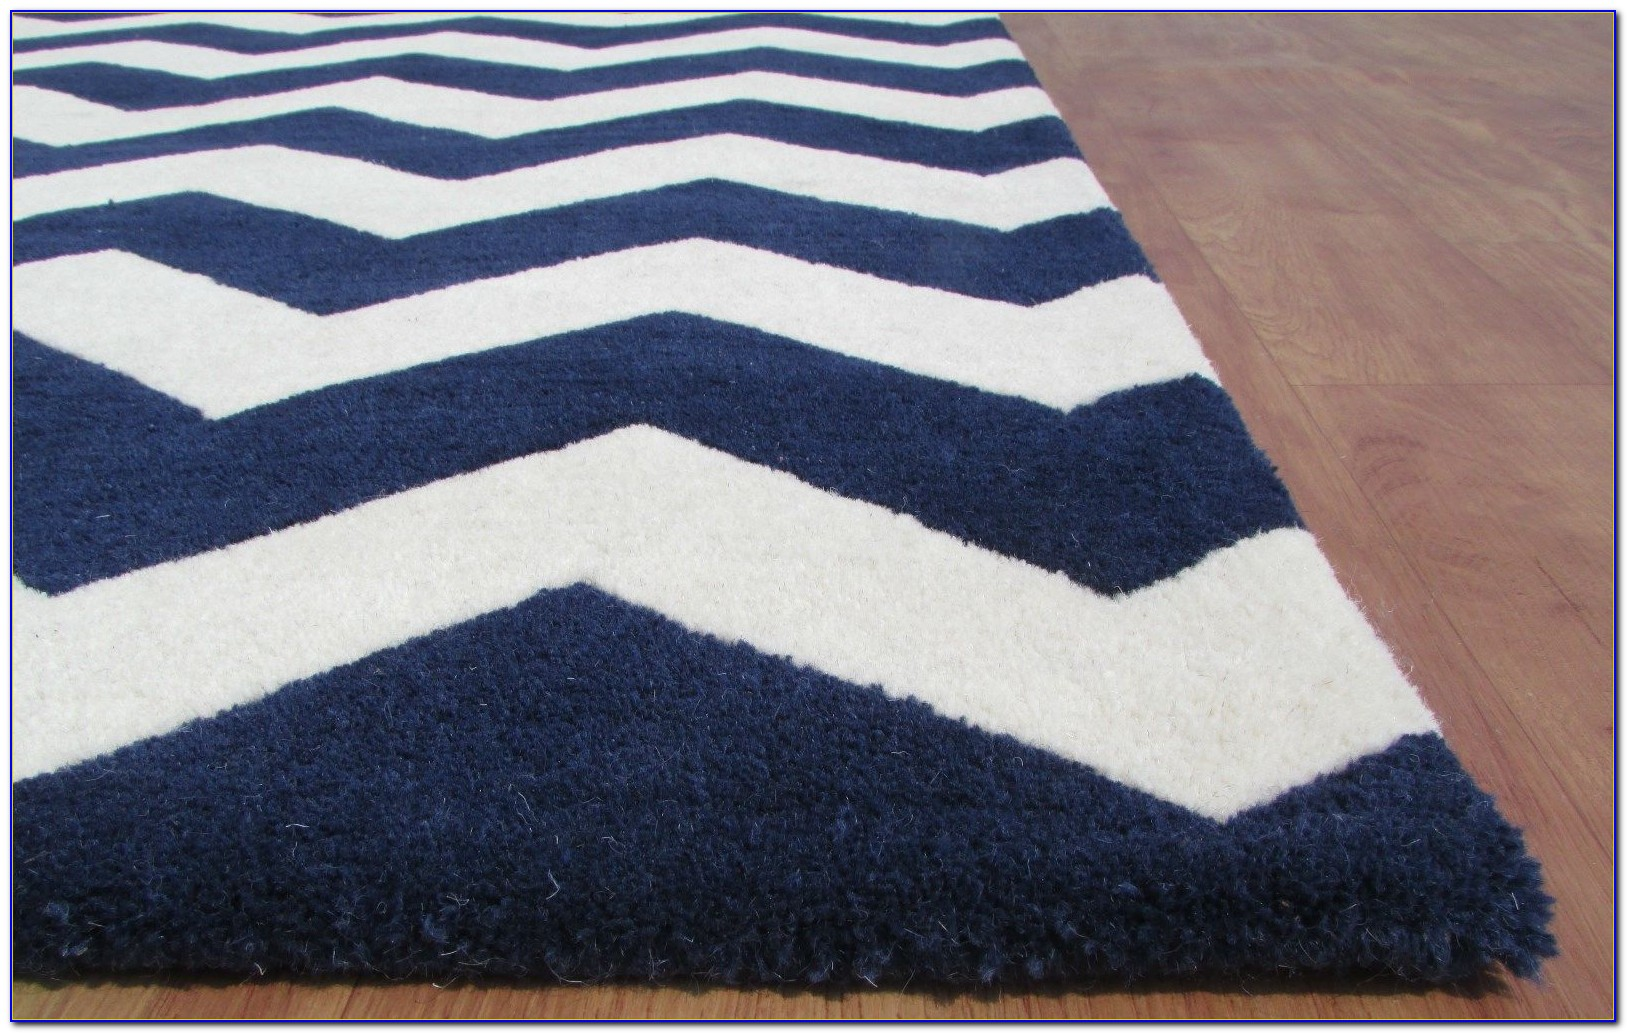 Navy Chevron Rug 4 215 6 Rugs Home Design Ideas